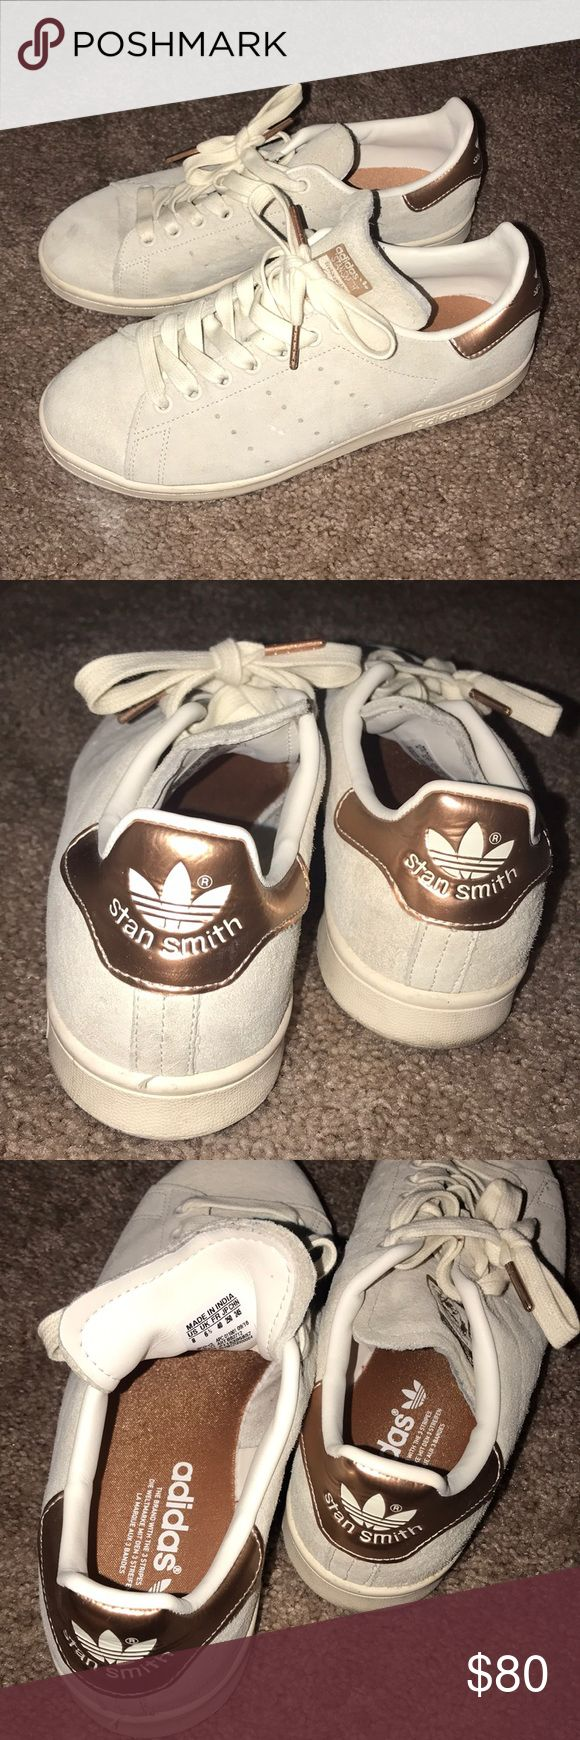 Limited edition SUEDE STAN SMITH adidas Beautiful color match cream/gold.  Bought in the UK size 8 women.  Worn about 3 times, super comfortable. Only thing is the small mark on the right toe.  Sad to give these up but I️ don't give them the love they should be getting :/ adidas Shoes Sneakers